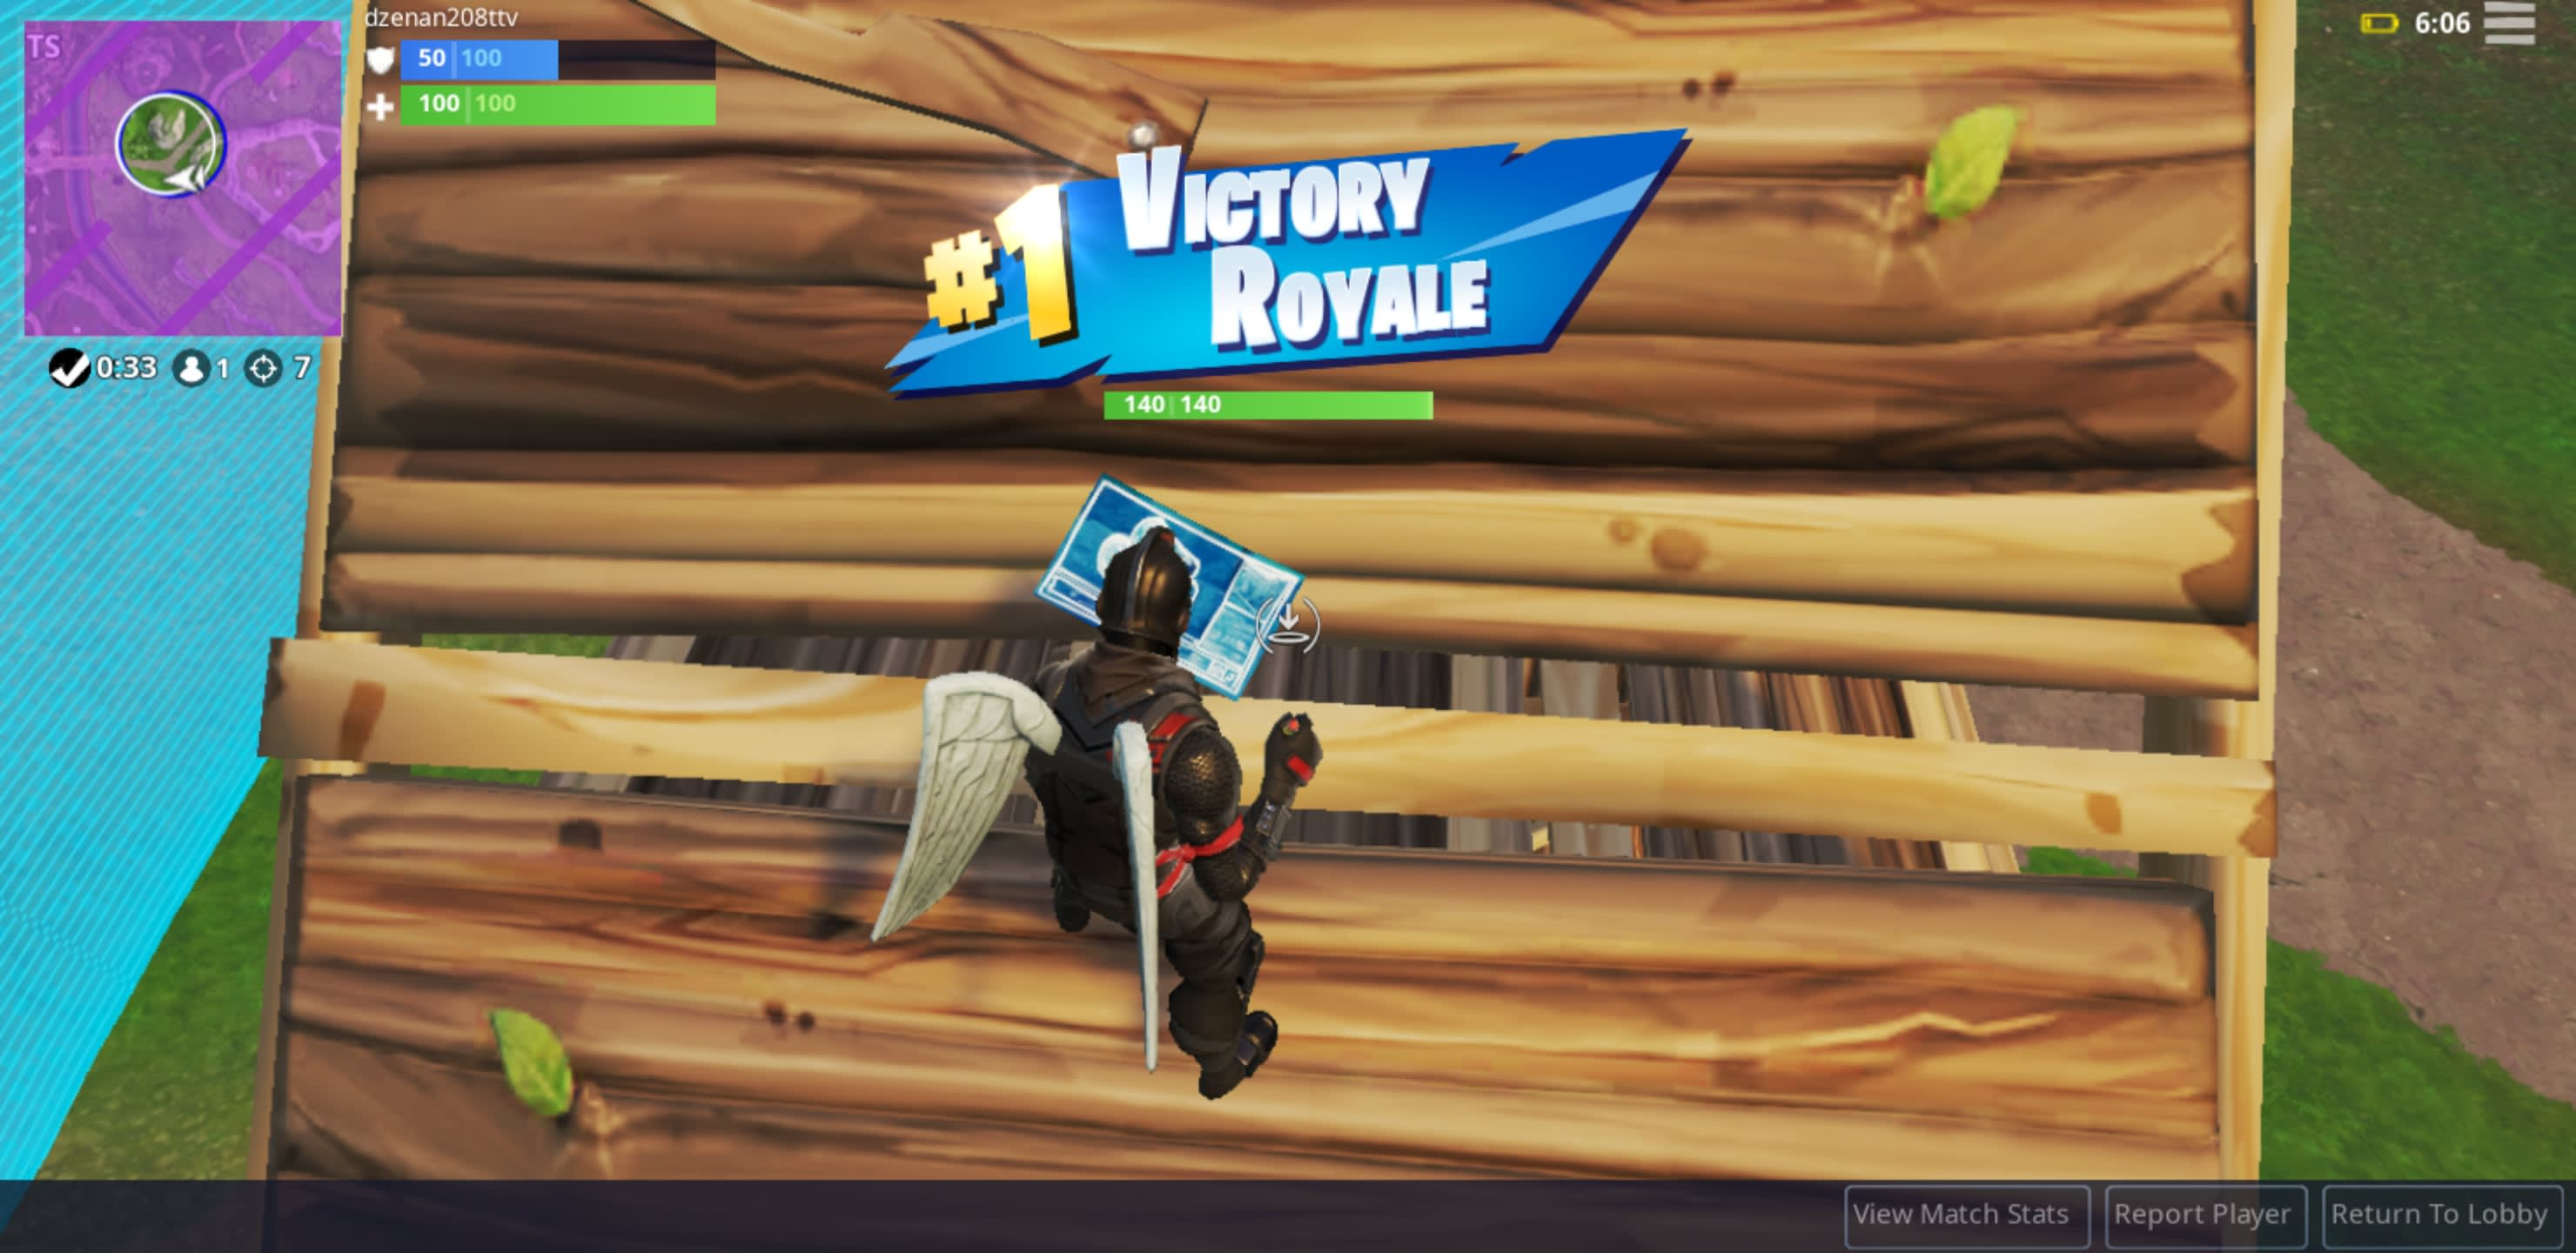 How To Play Fortnite Battle Royale Ps4 Play Fortnite Battle Royale With You Ps4 Gamer By Dzenanblambic Fiverr